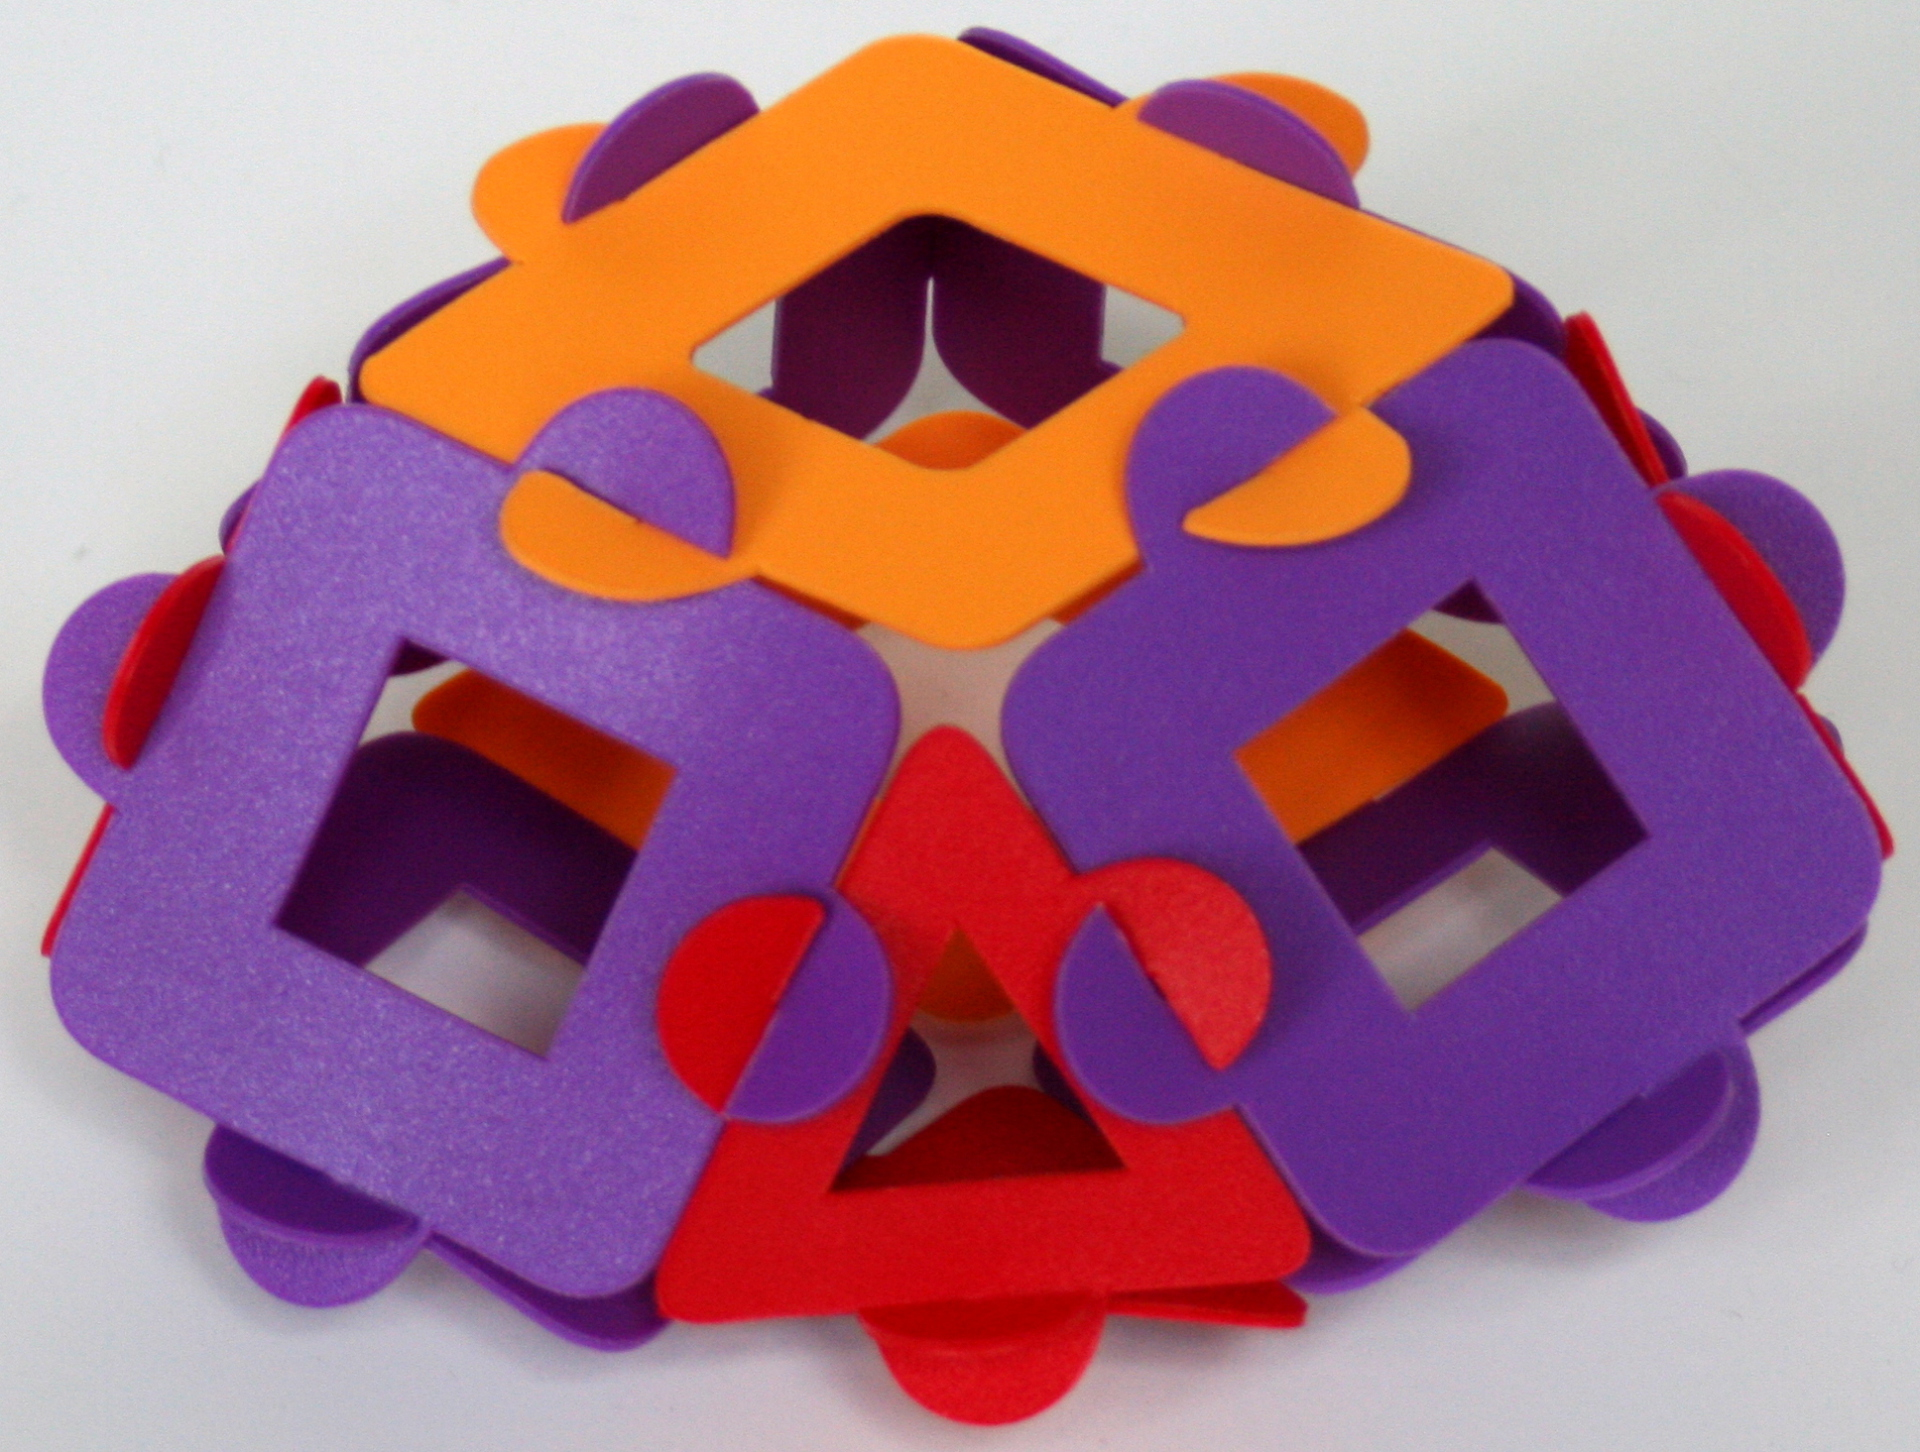 Twice reduced tetrahedrally expanded rhombic dodecahedron